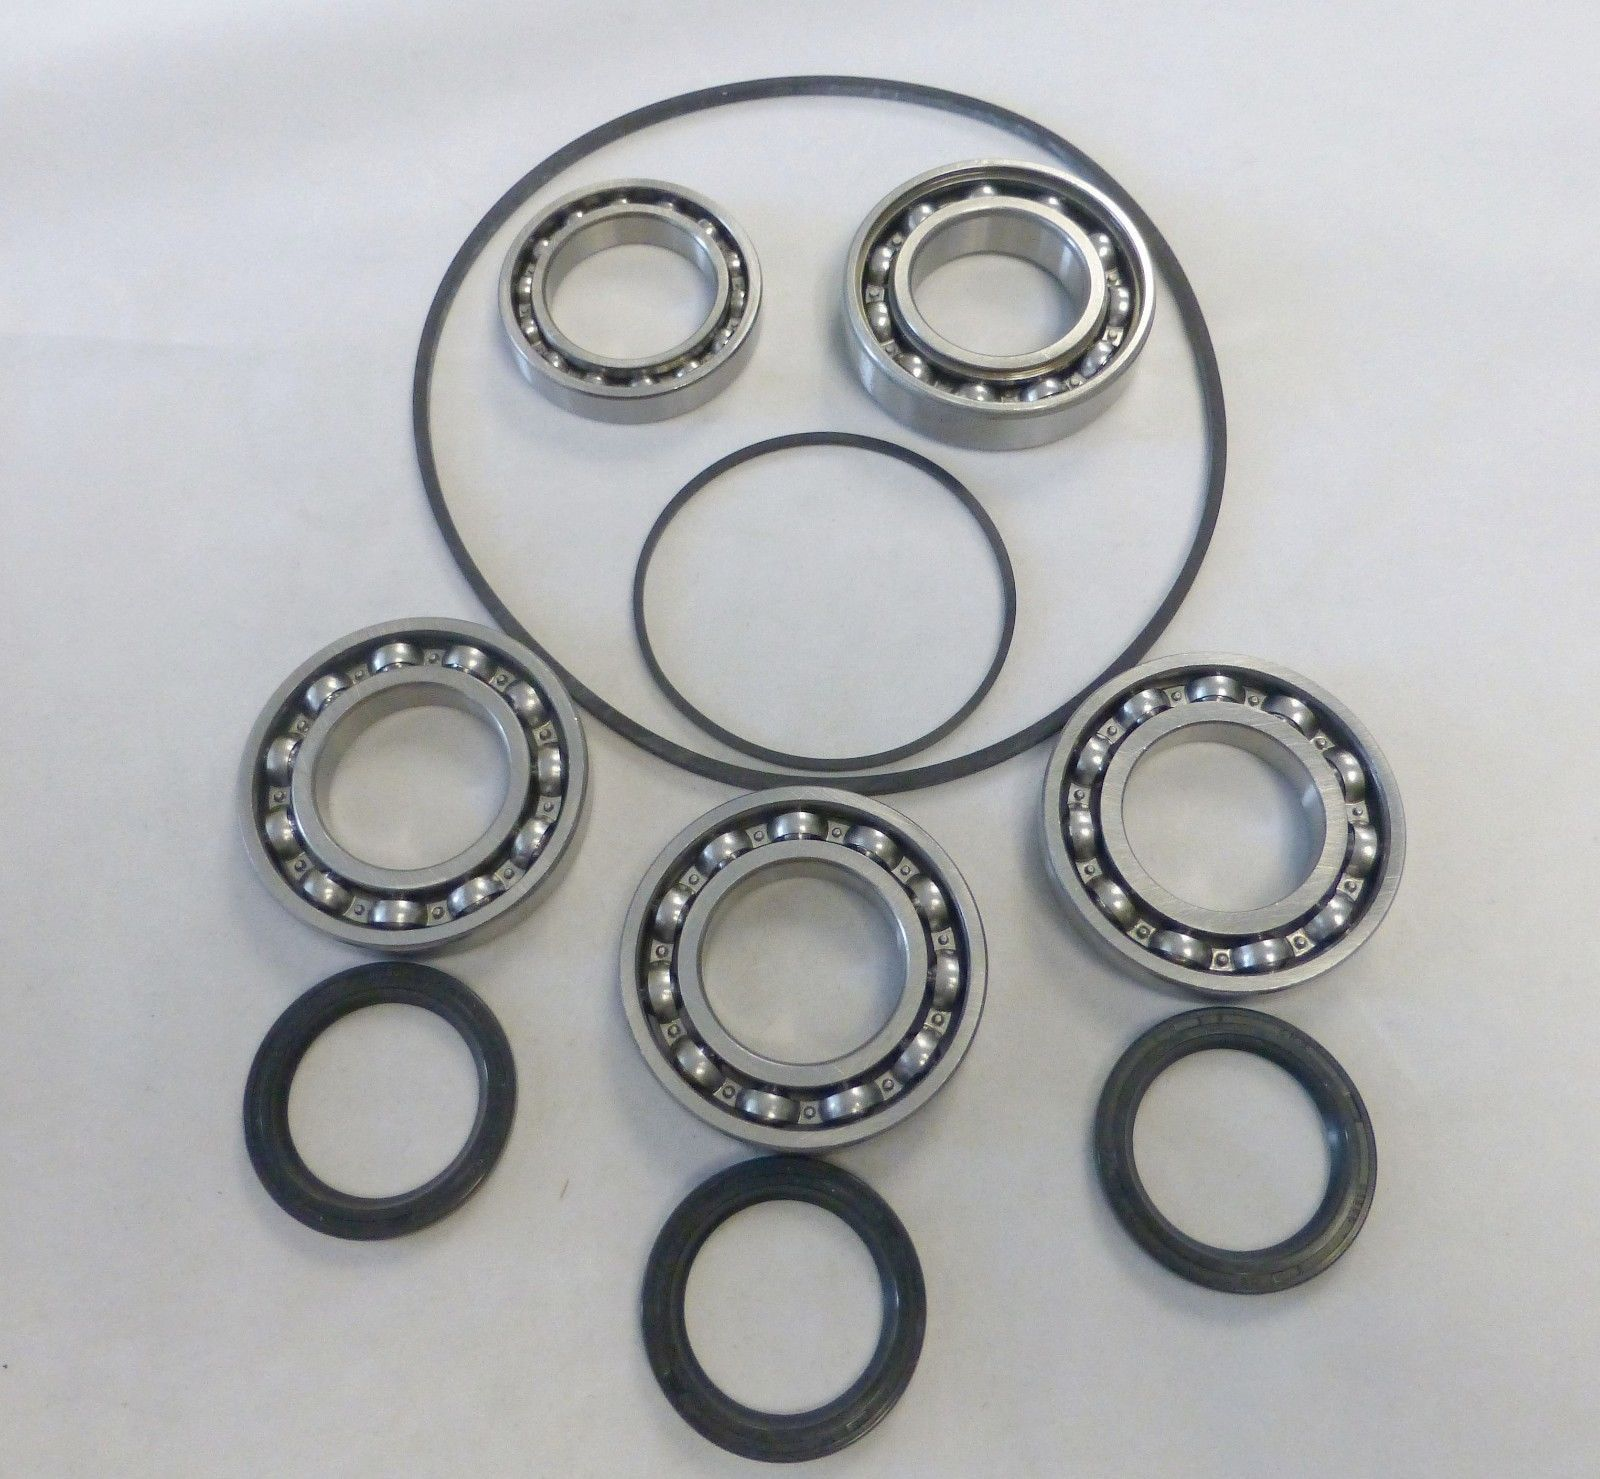 Polaris RZR 800 Front Gearcase Differential Bearing & Seal